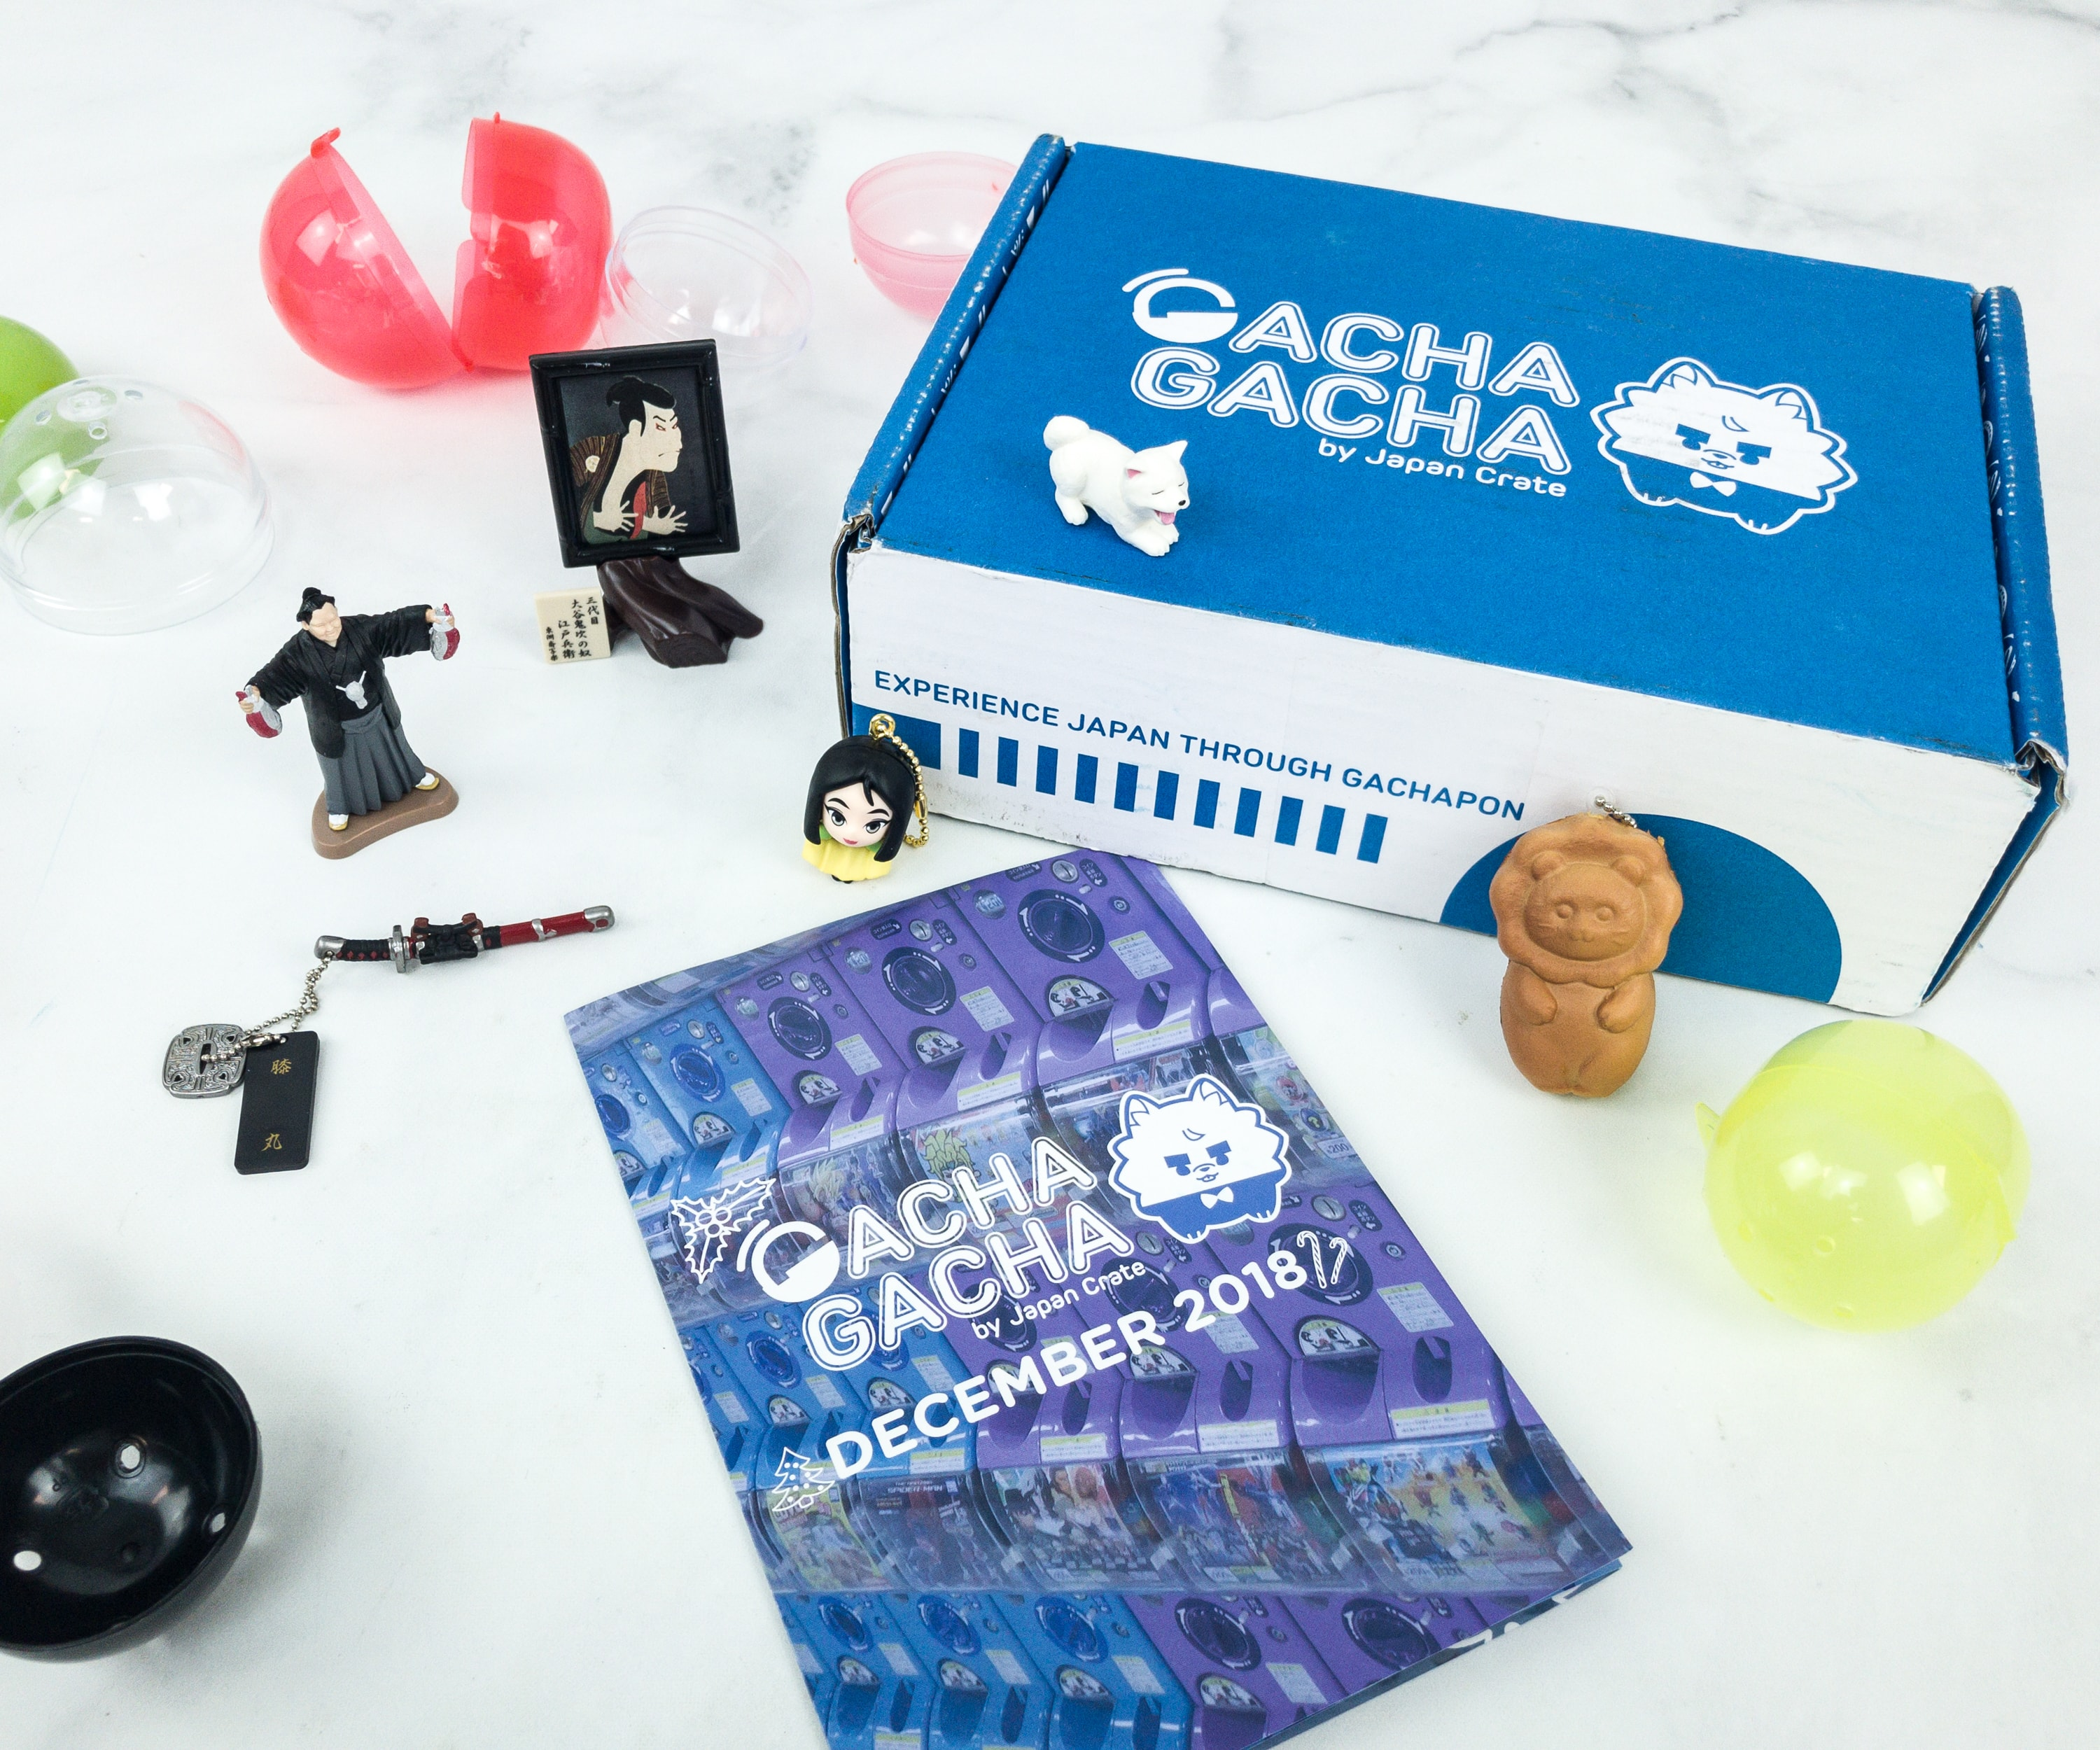 Gacha Gacha Crate December 2018 Subscription Box Review + Coupon